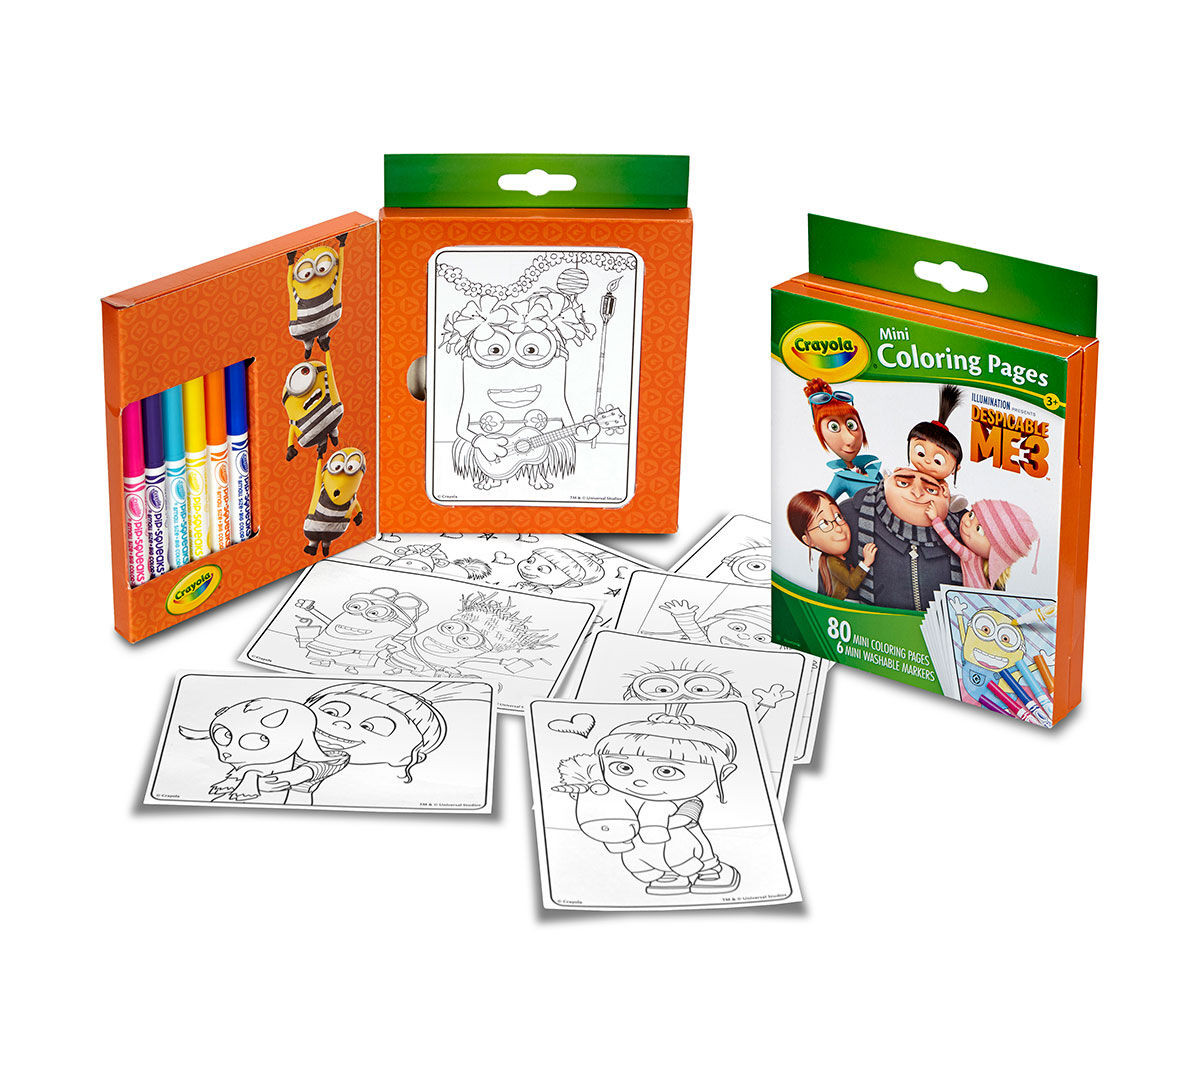 Nice Crayola Mini Coloring Pages Image Collection